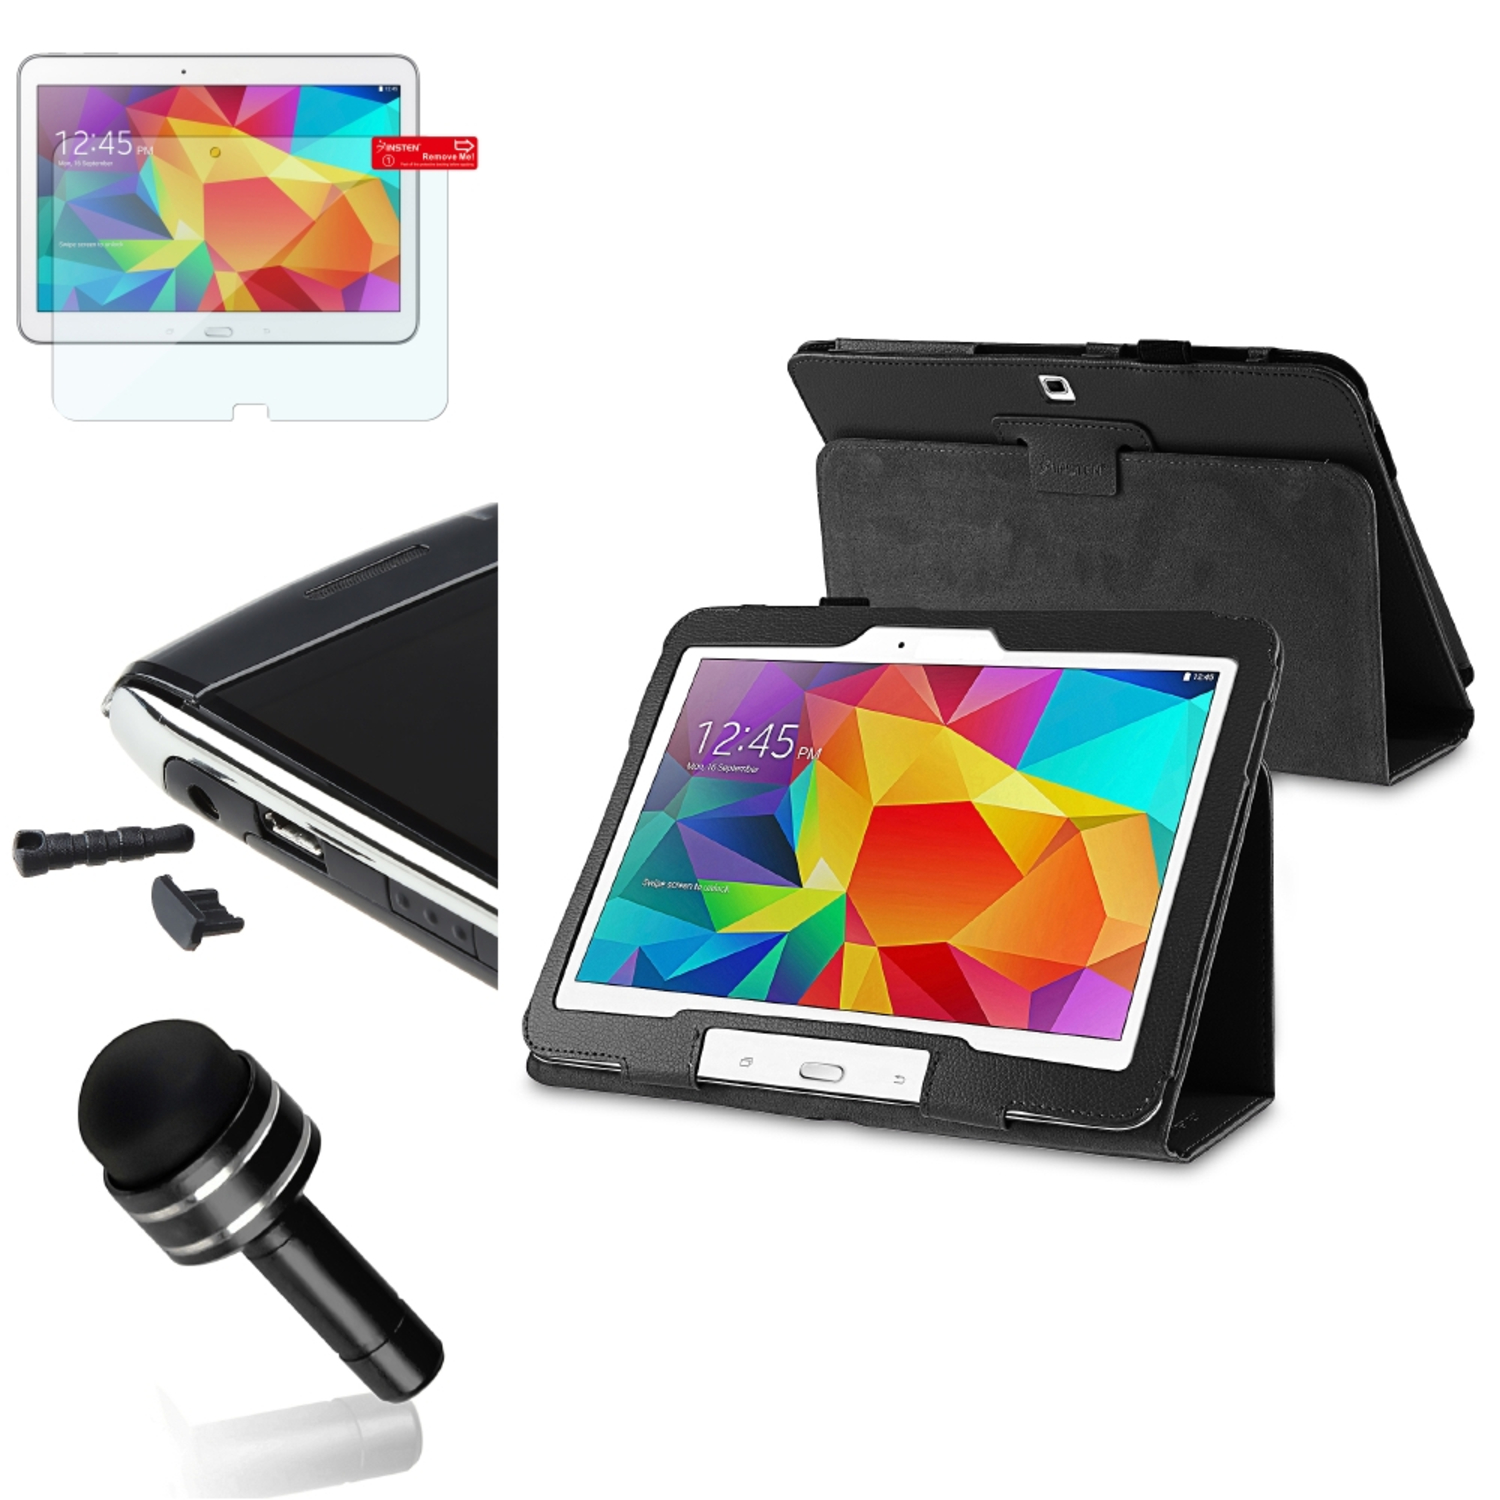 Insten Black Leather Stand Case Protector/Stylus/Cap For Samsung Galaxy Tab 4 10.1 SM-T530NU